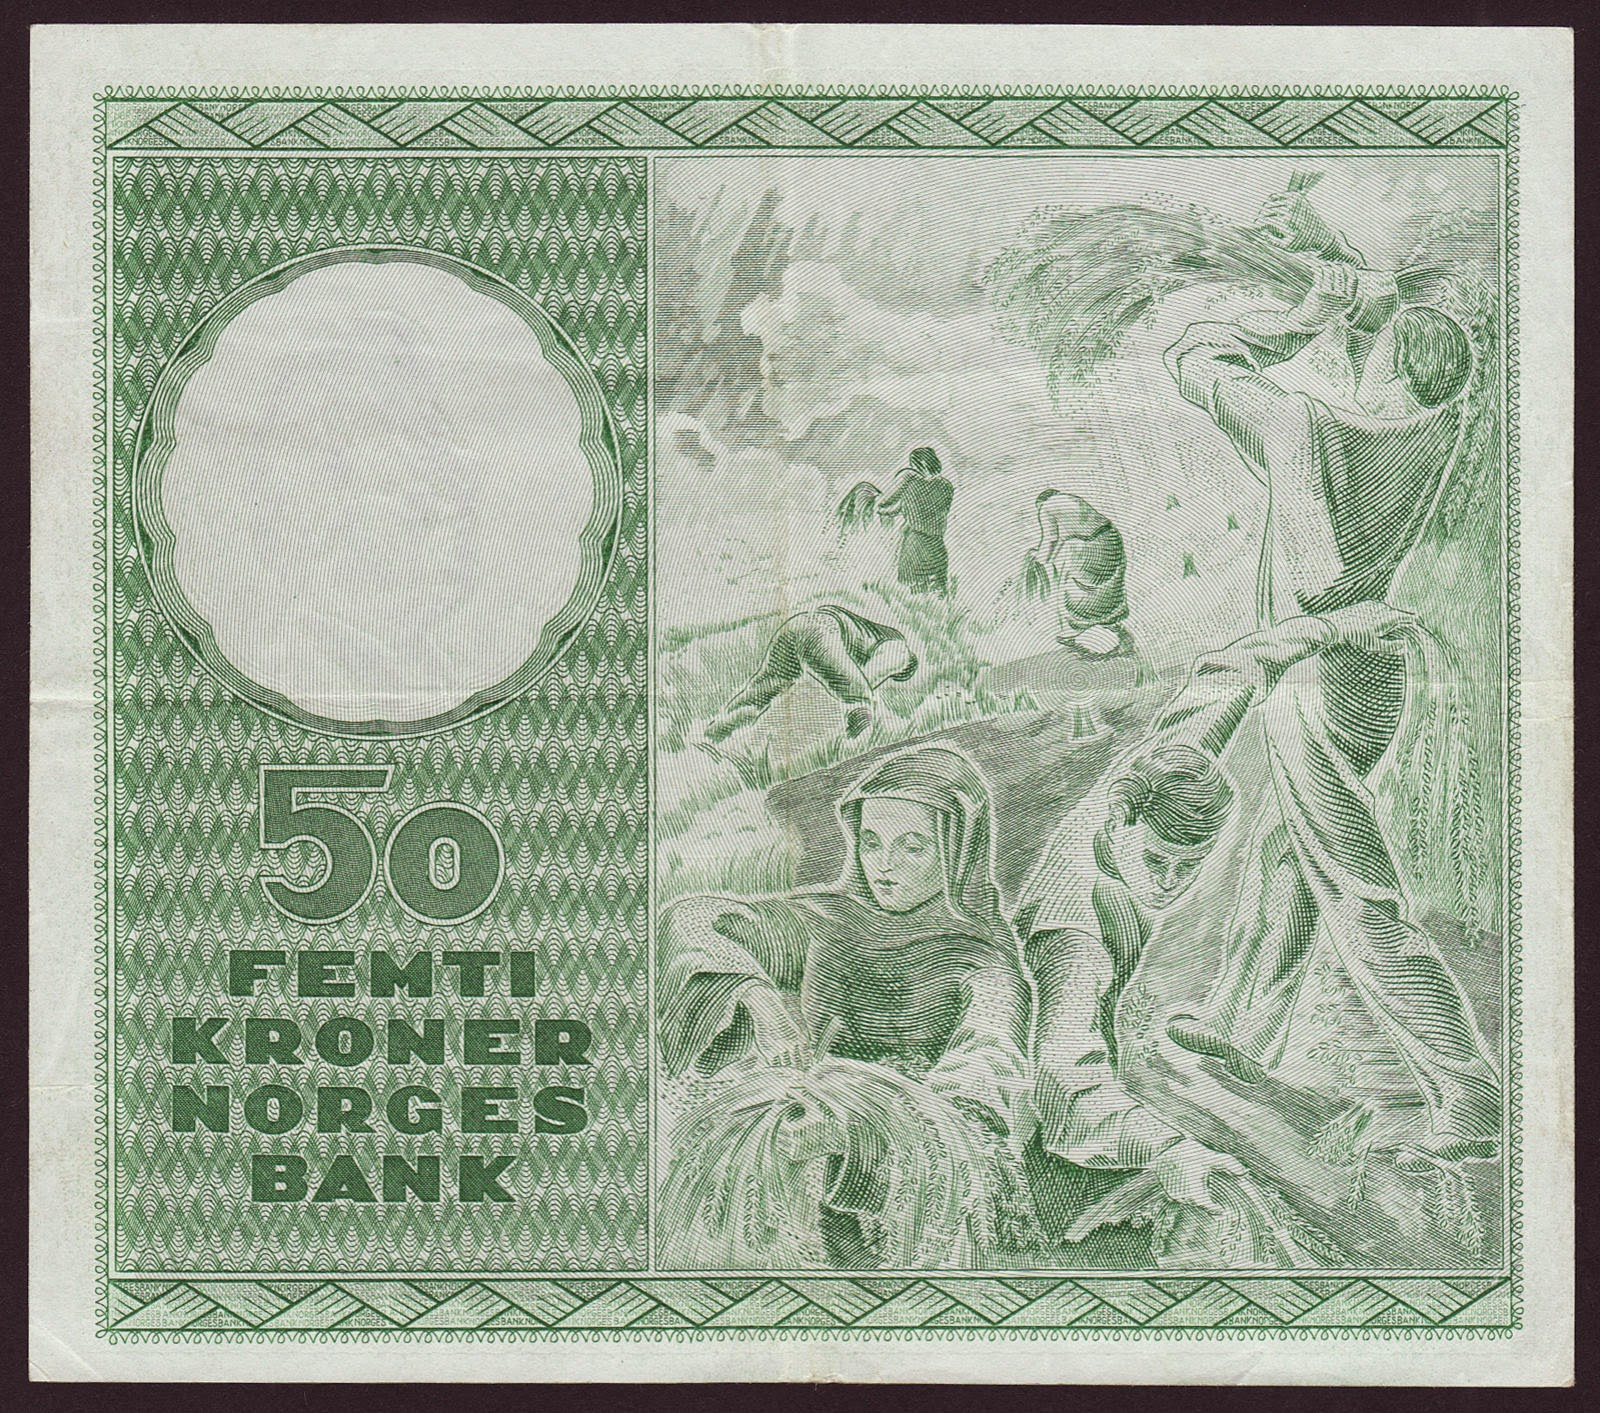 Norway Banknotes 50 Kroner note 1960 Harvesting scene after a painting by Hugo Louis Mohr